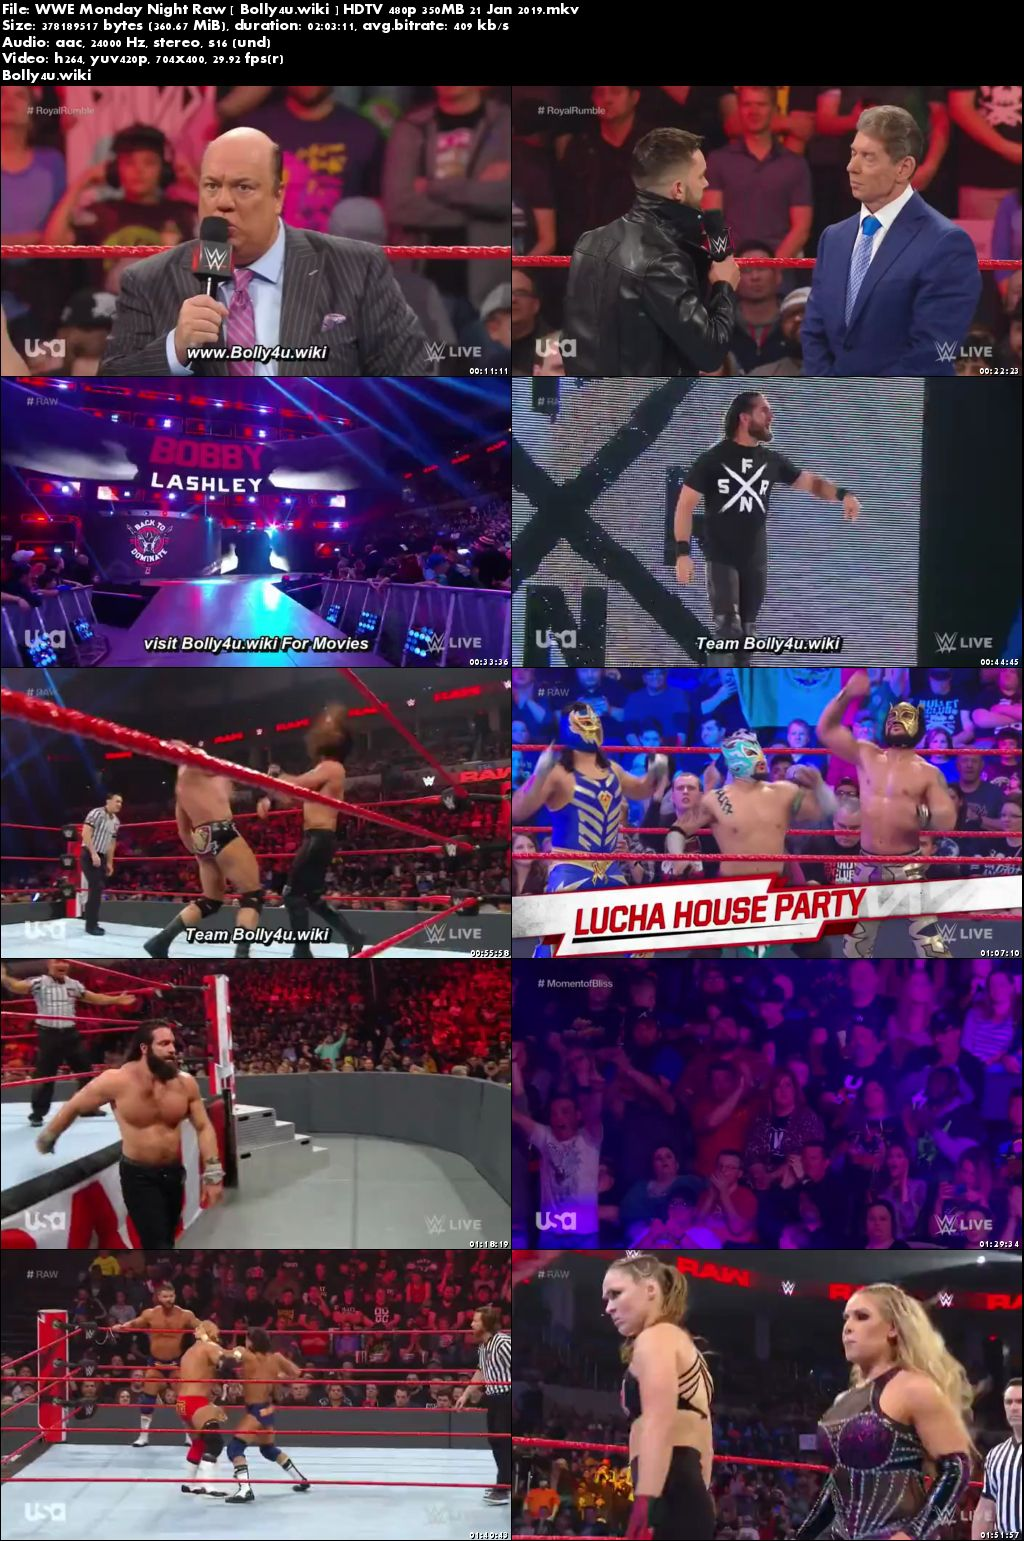 Wwe monday night raw hdtv 480p 350mb 21 jan 2019 - Monday night raw images ...